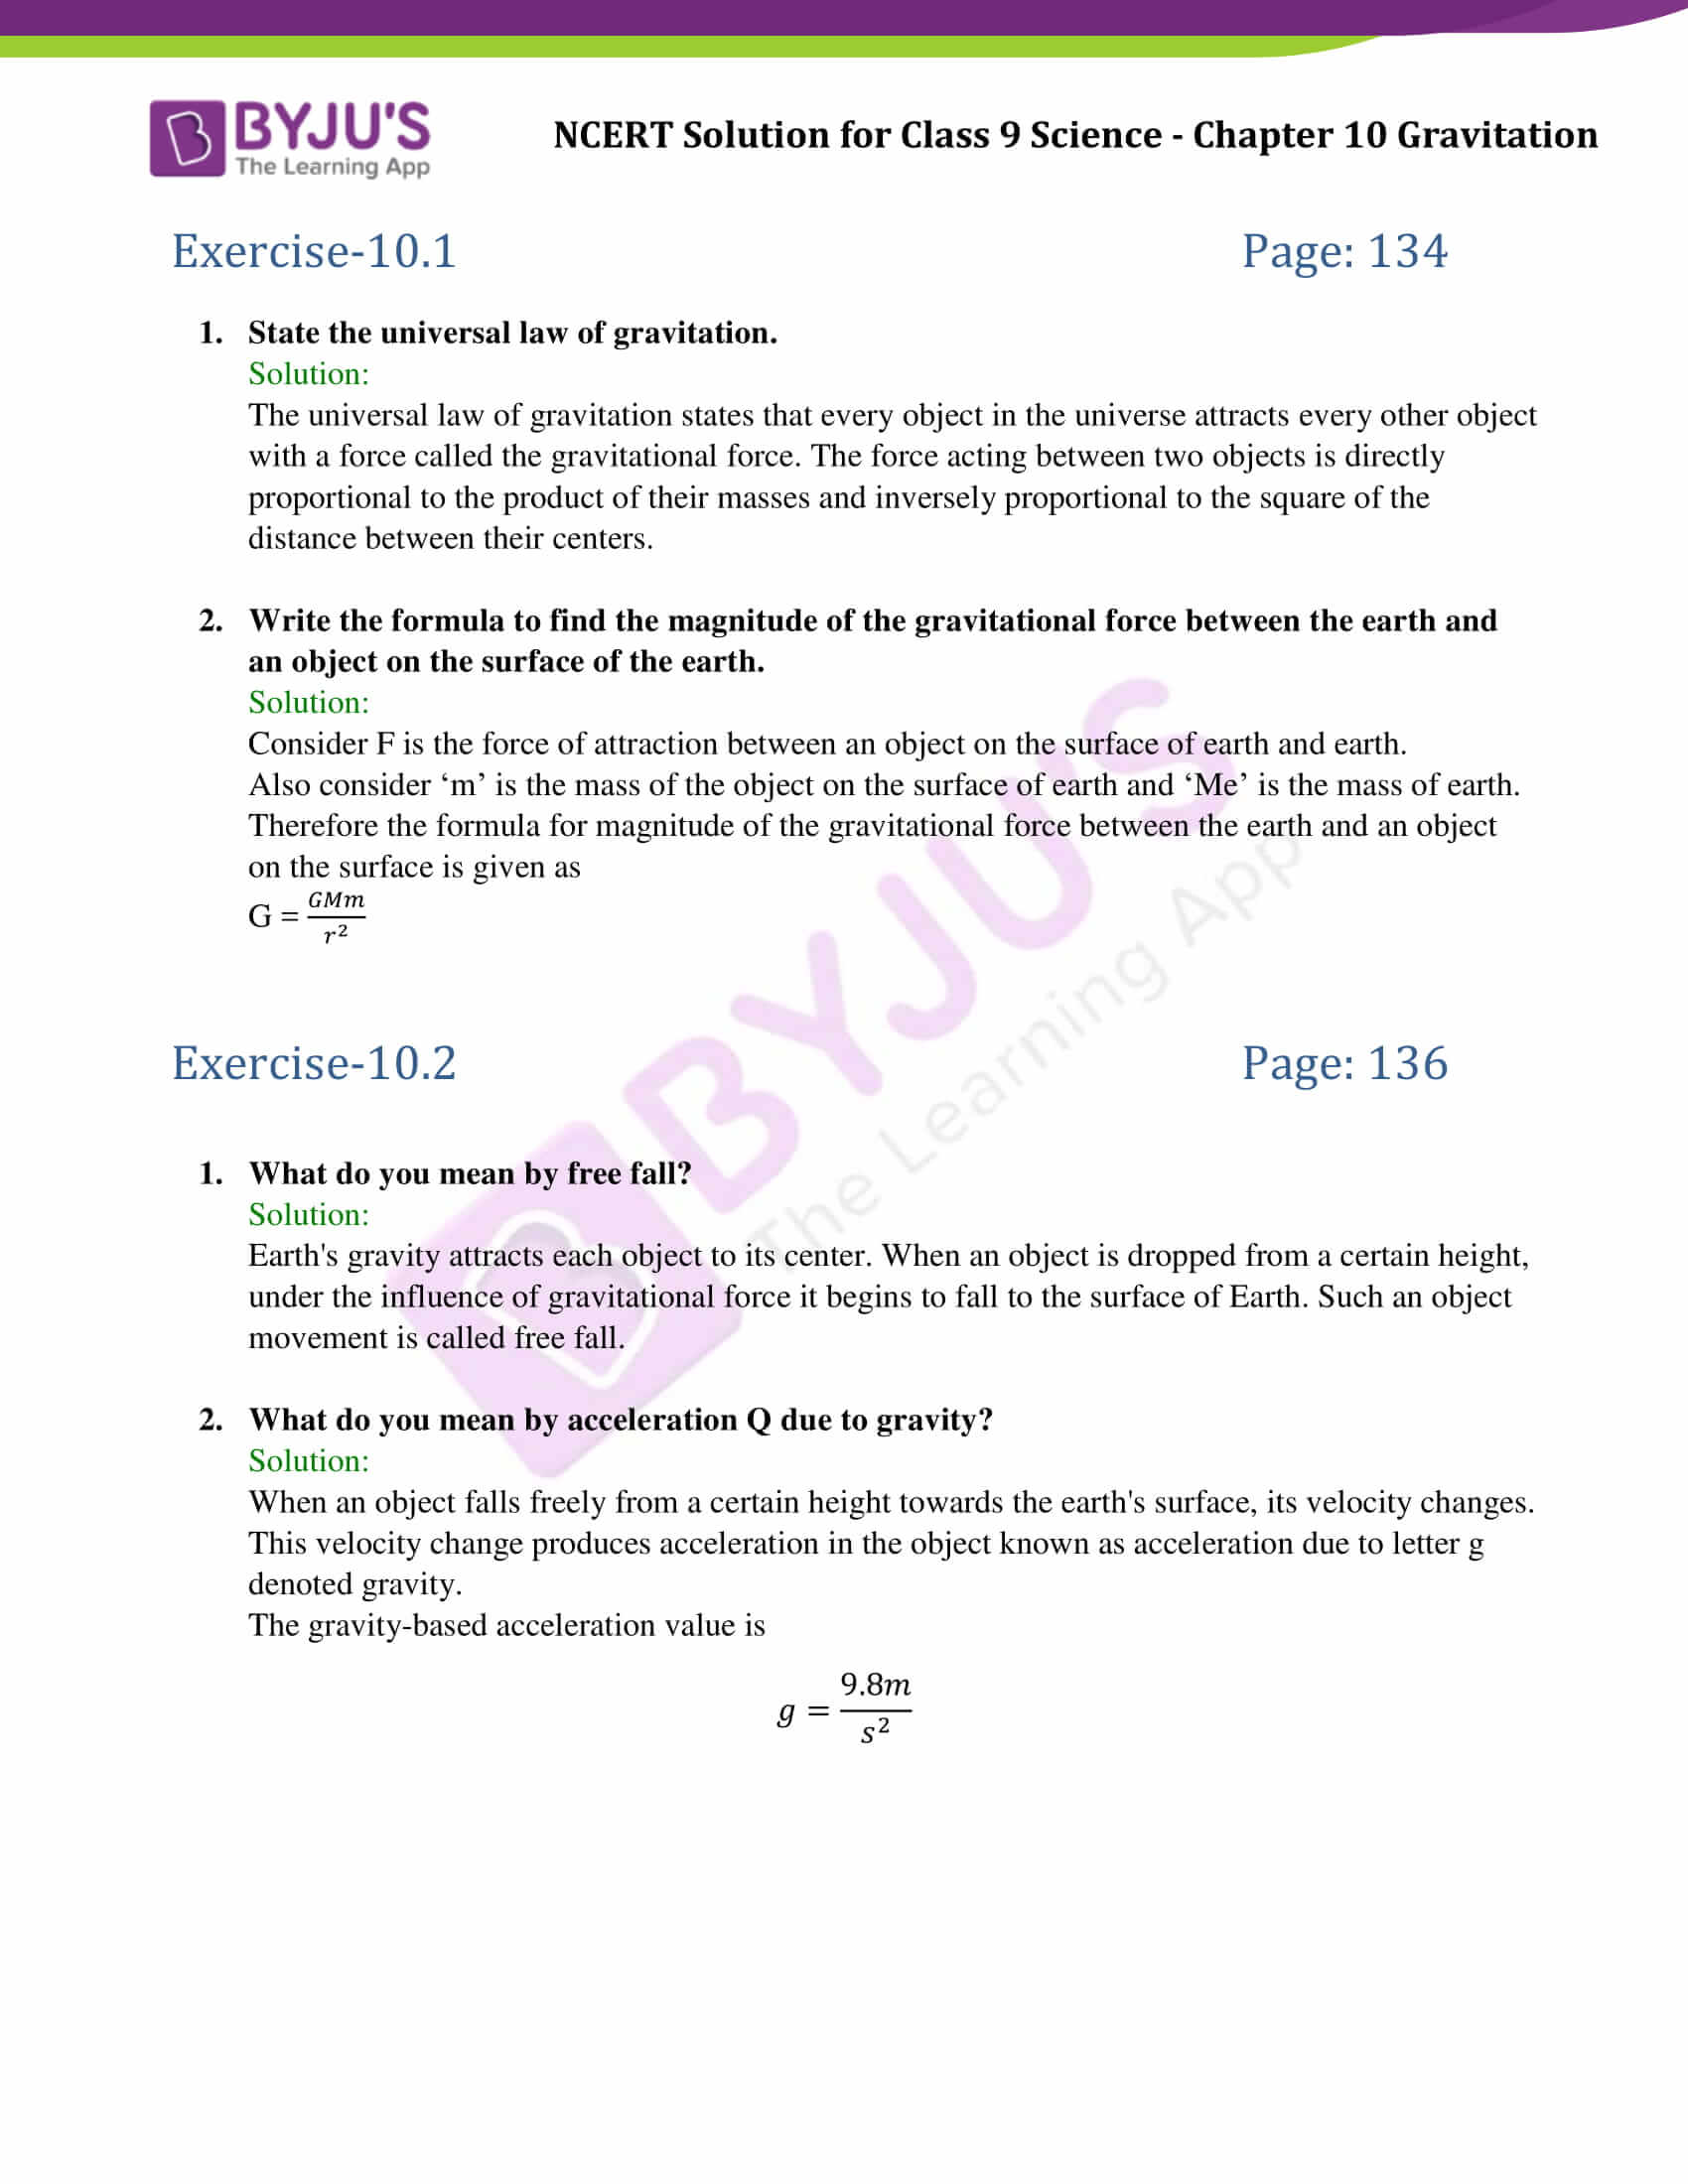 NCERT Solutions Class 9 Science Chapter 10 Gravitation - Download